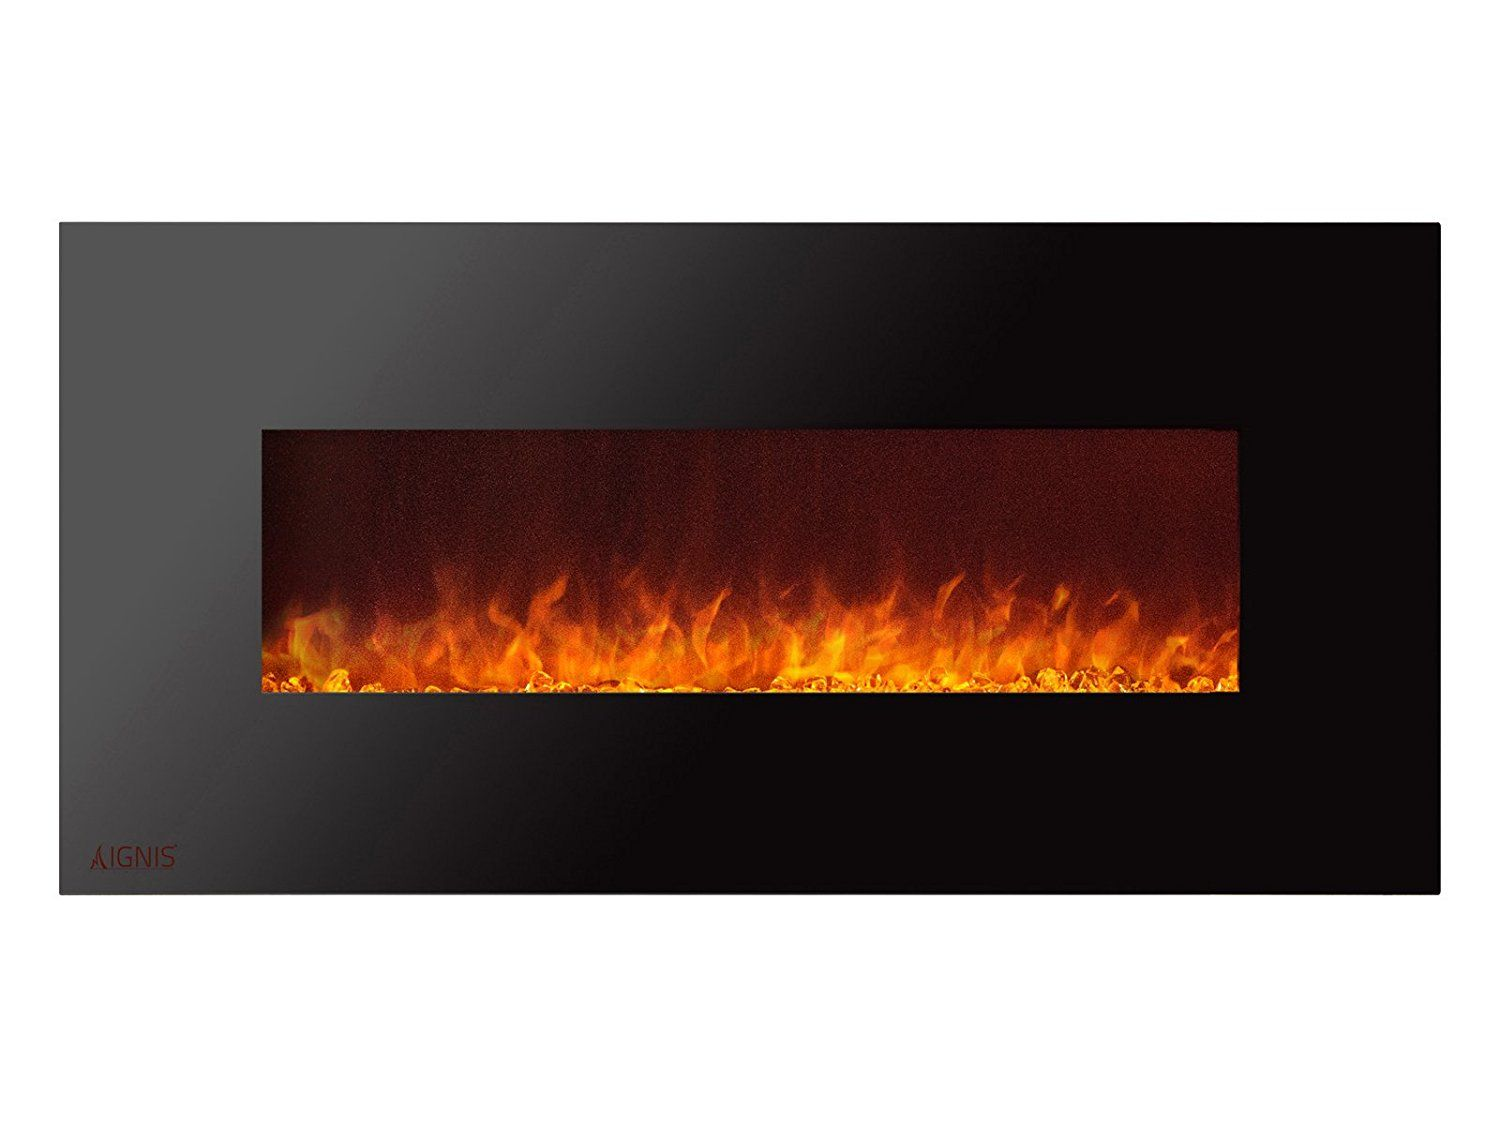 Ignis Royal 50 Inch Wall Mounted Electric Fireplace With Crystals Click Image To R Wall Mount Electric Fireplace Electric Fireplace Wall Electric Fireplace